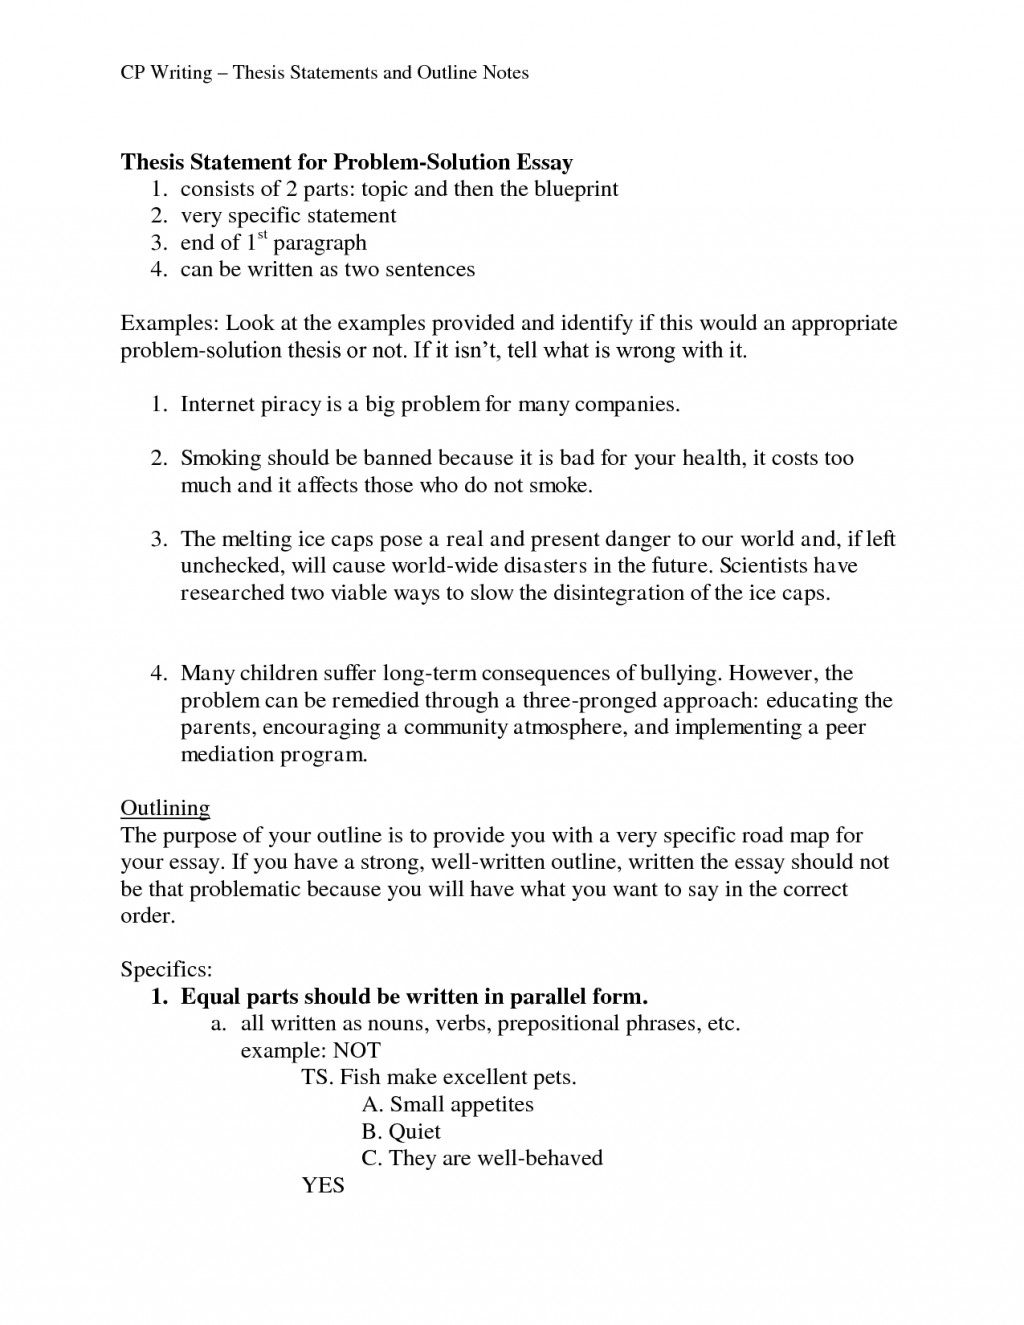 018 Research Paper Examples Of Thesis Statements For Papers Phenomenal Argumentative Statement Pdf Example Career Large